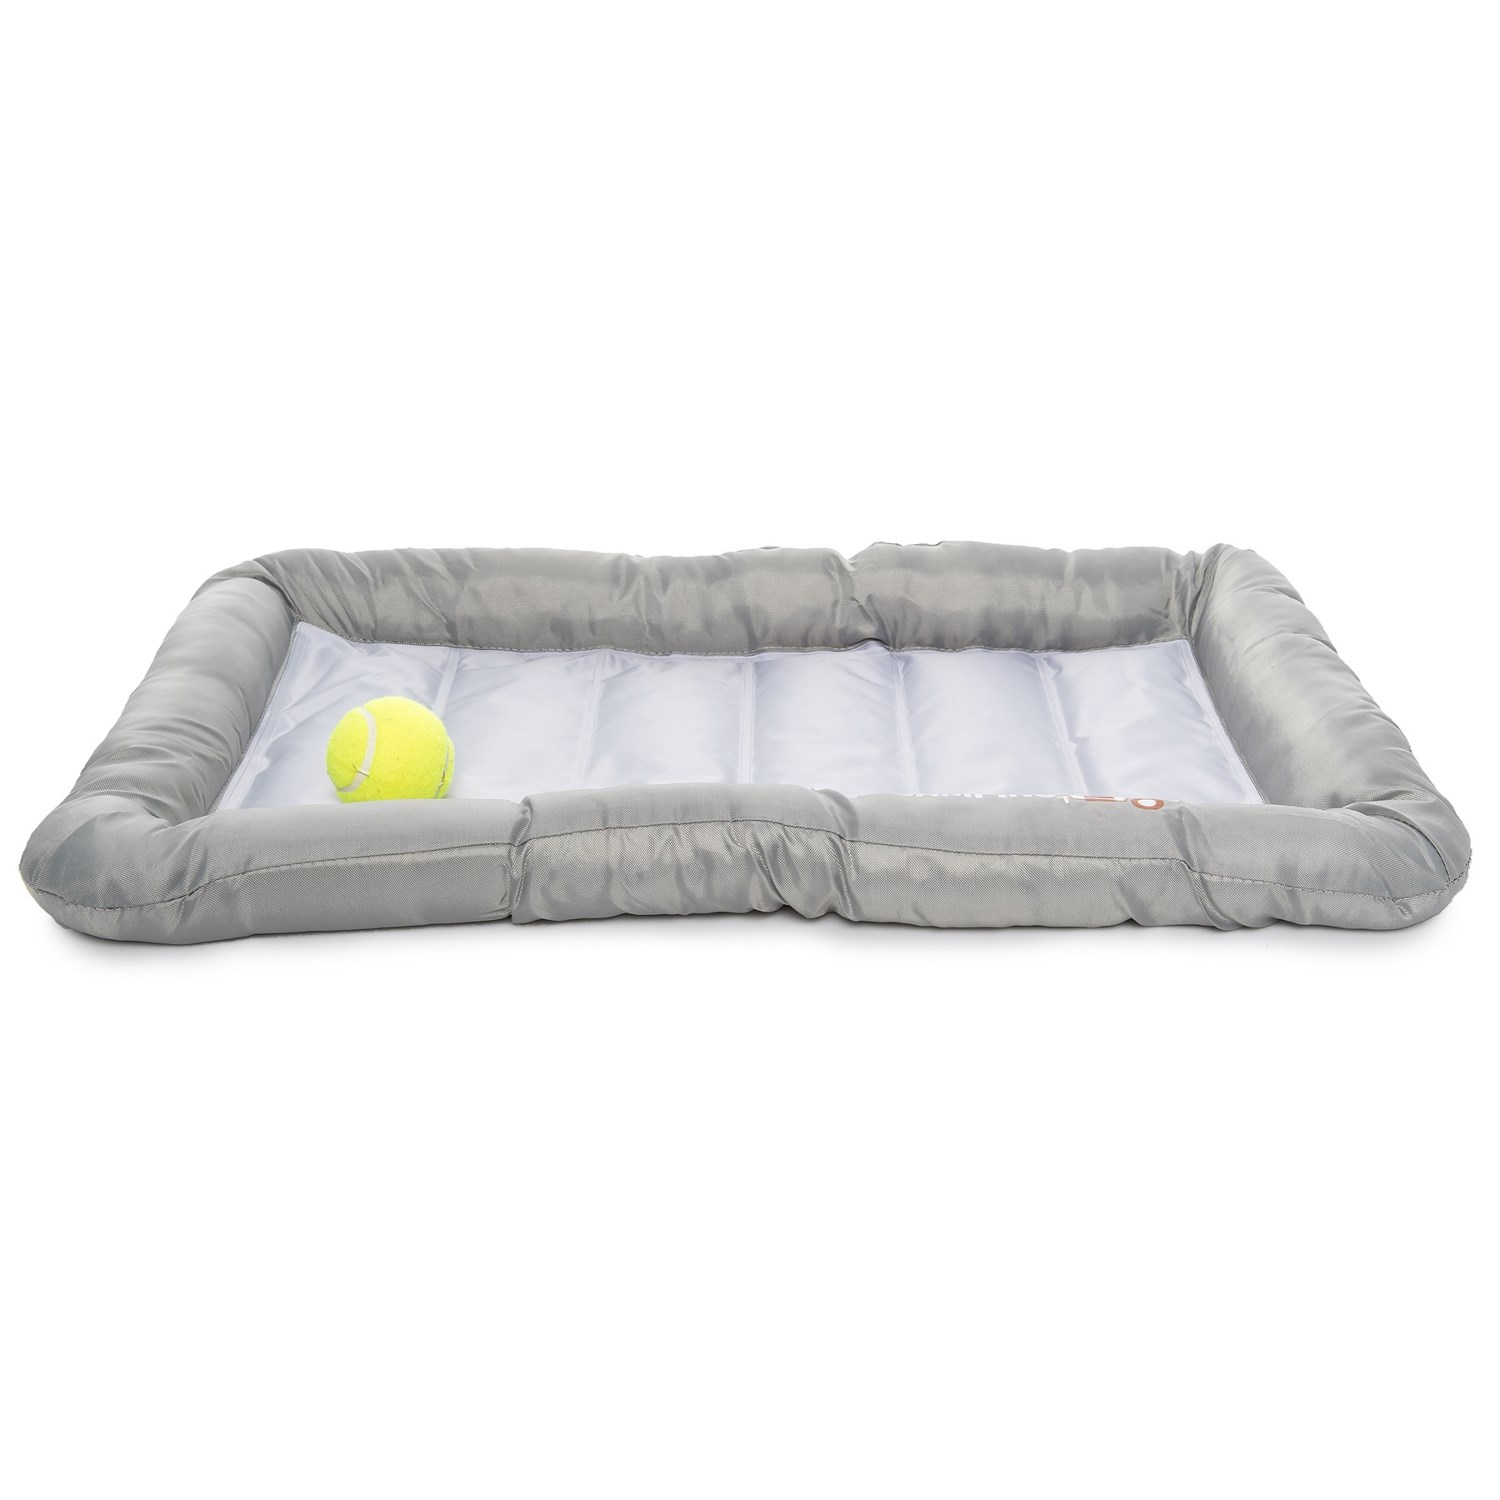 beds reversible cat soft on crate item cushion dog bed puppy cachorro cama mats pad washable home mat de pet house kennel in garden fleece from